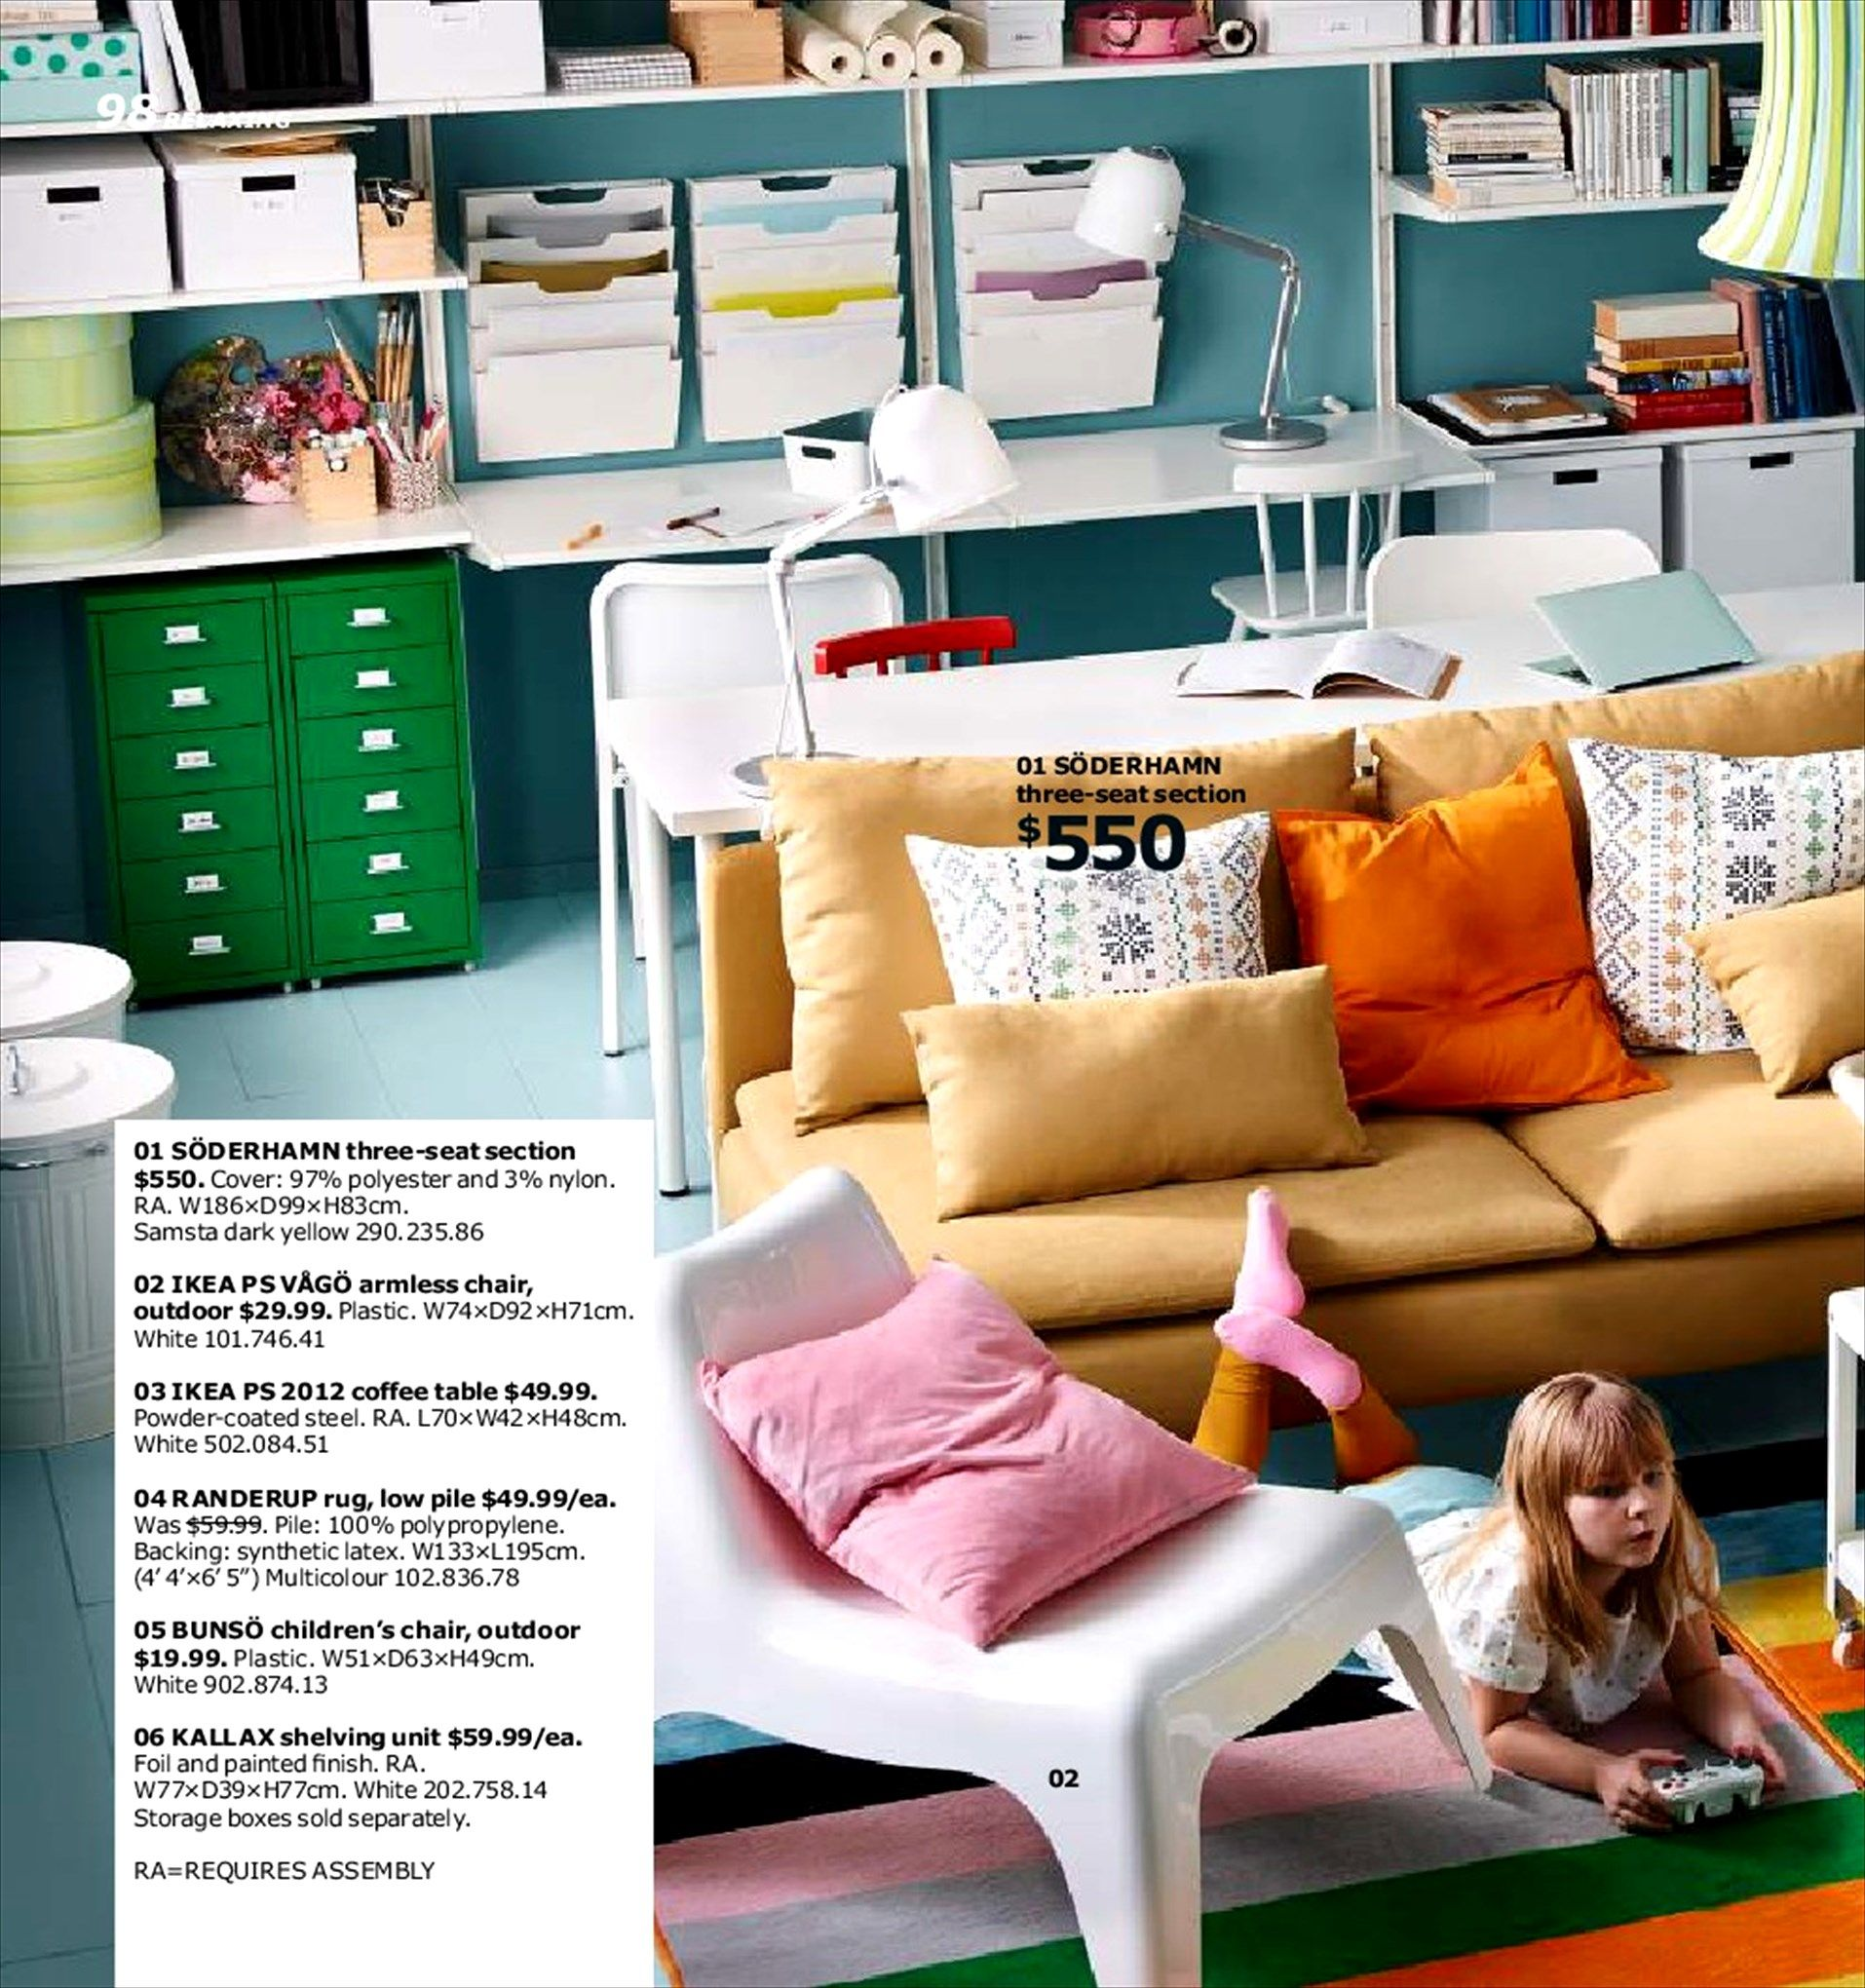 ikea dorm furniture. Catalogue Of Deals From IKEA Ikea Dorm Furniture I